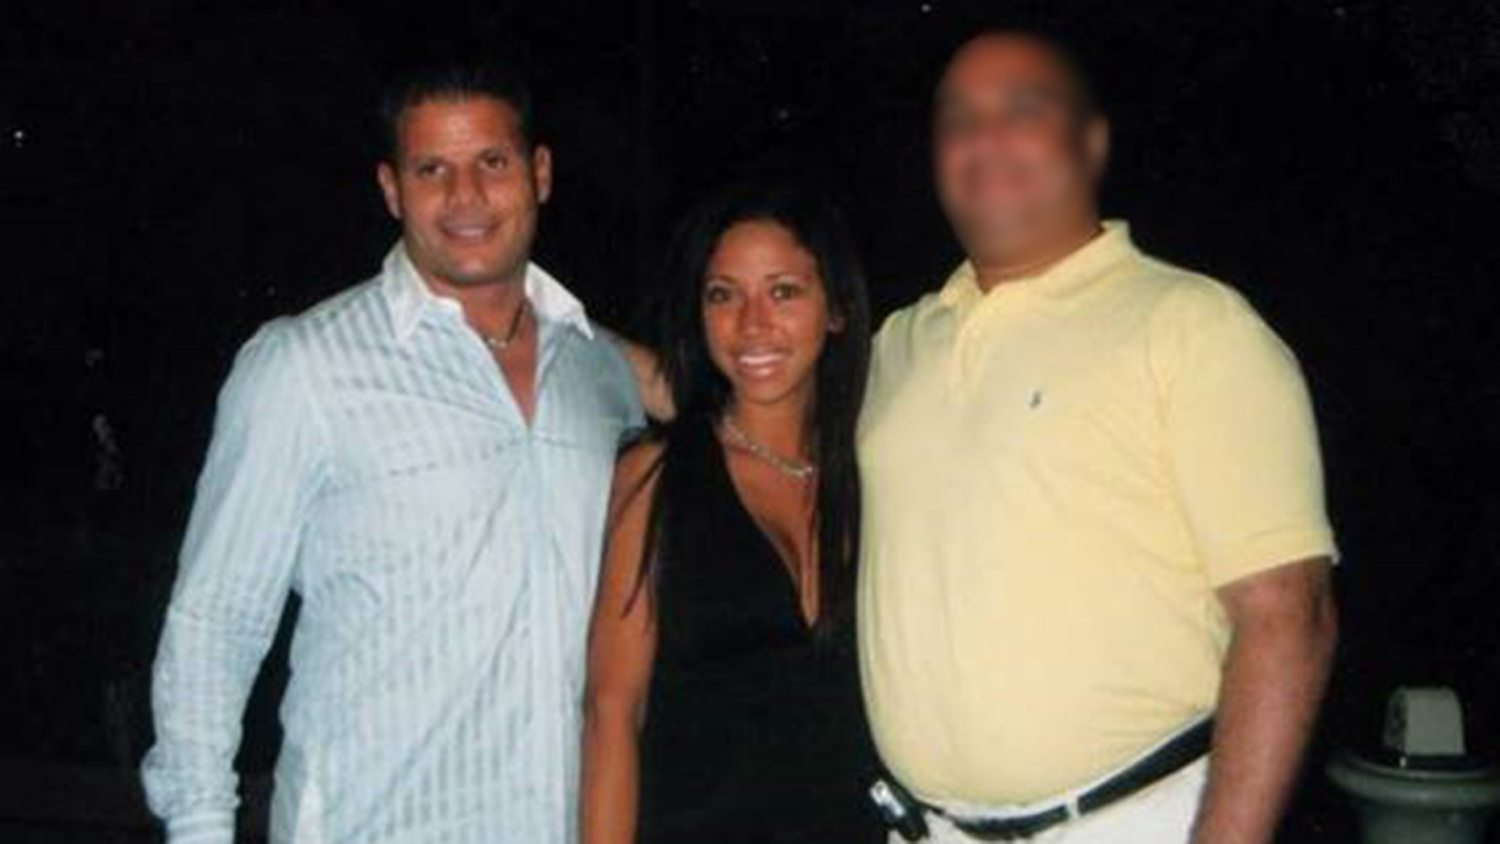 Dalia Dippolito Planned The Perfect Murder, But It Backfired